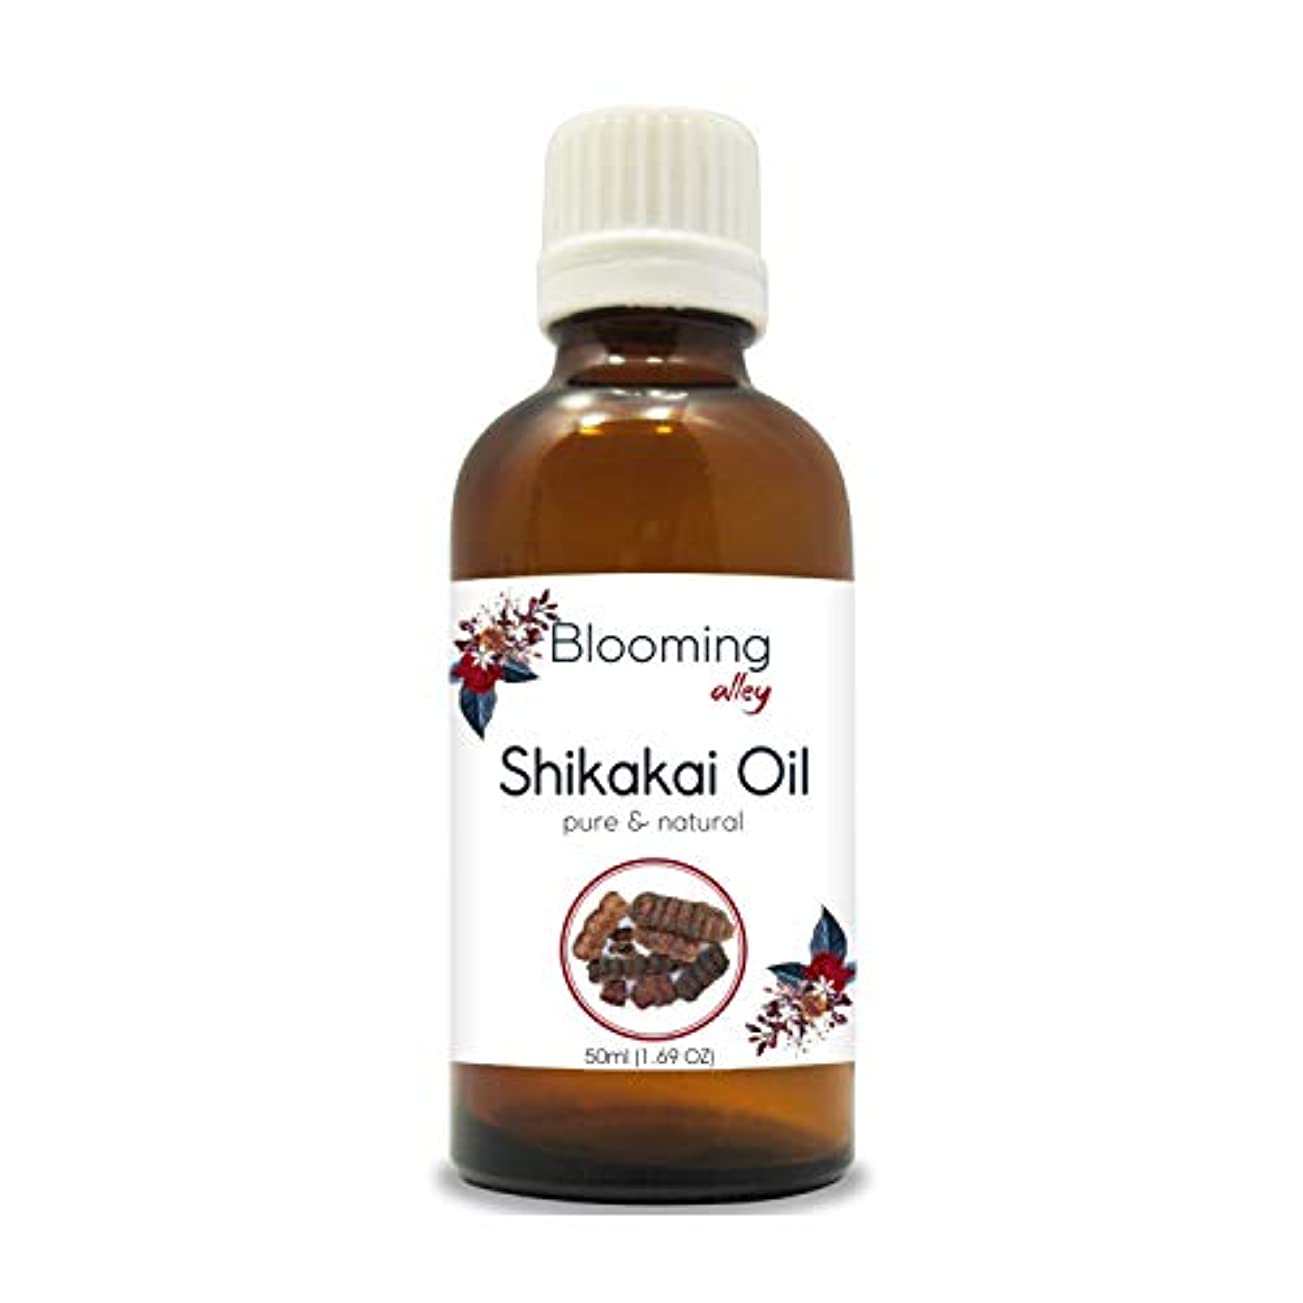 ウィスキー固体タックSHIKAKAI OIL 100% NATURAL PURE UNDILUTED UNCUT OIL 50ML